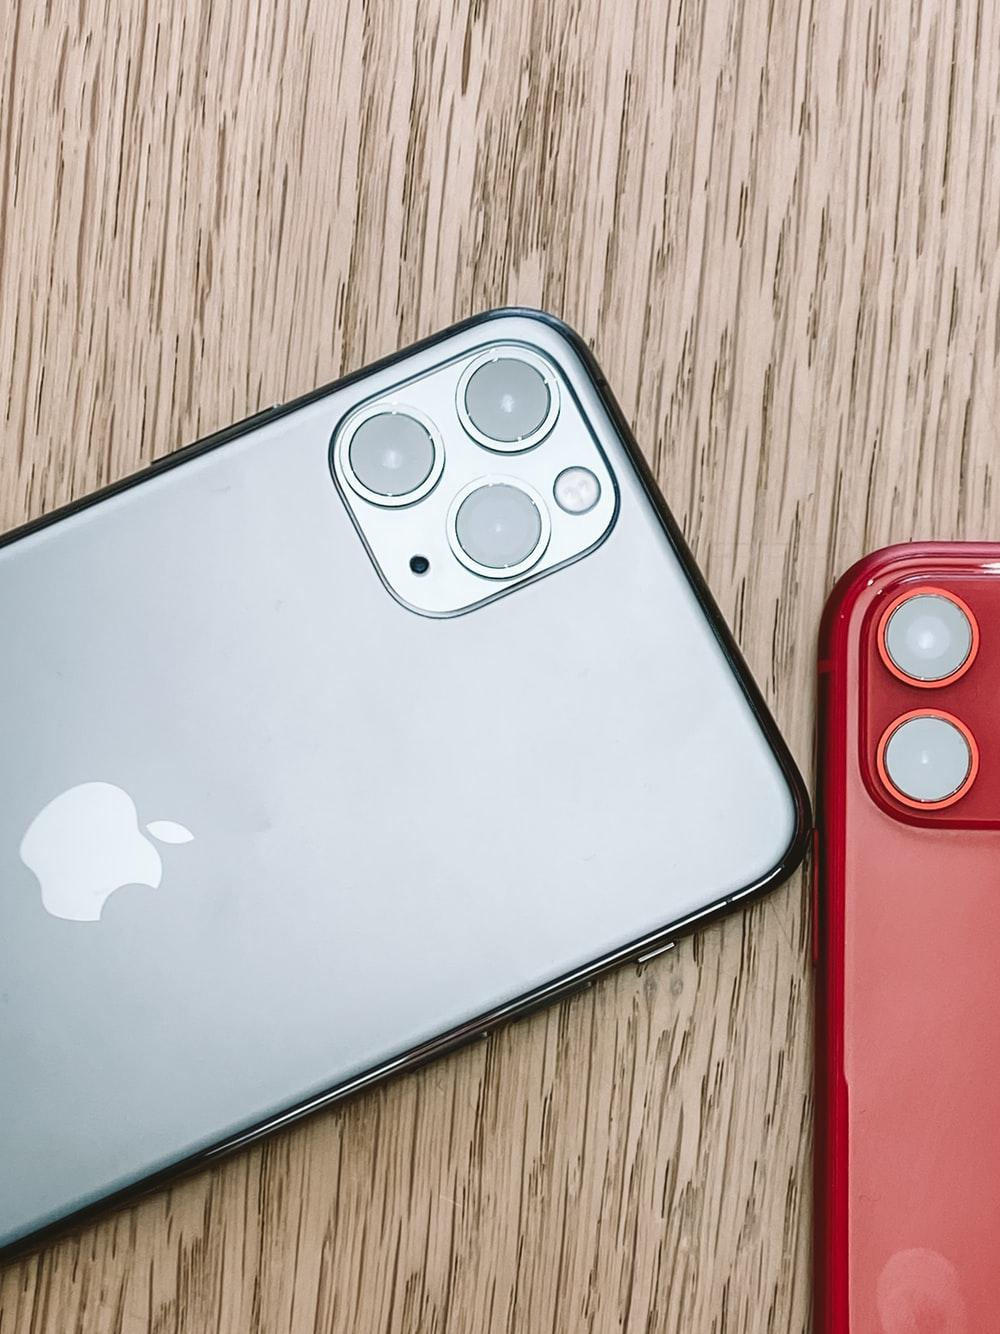 silver iPhone 11 on brown surface